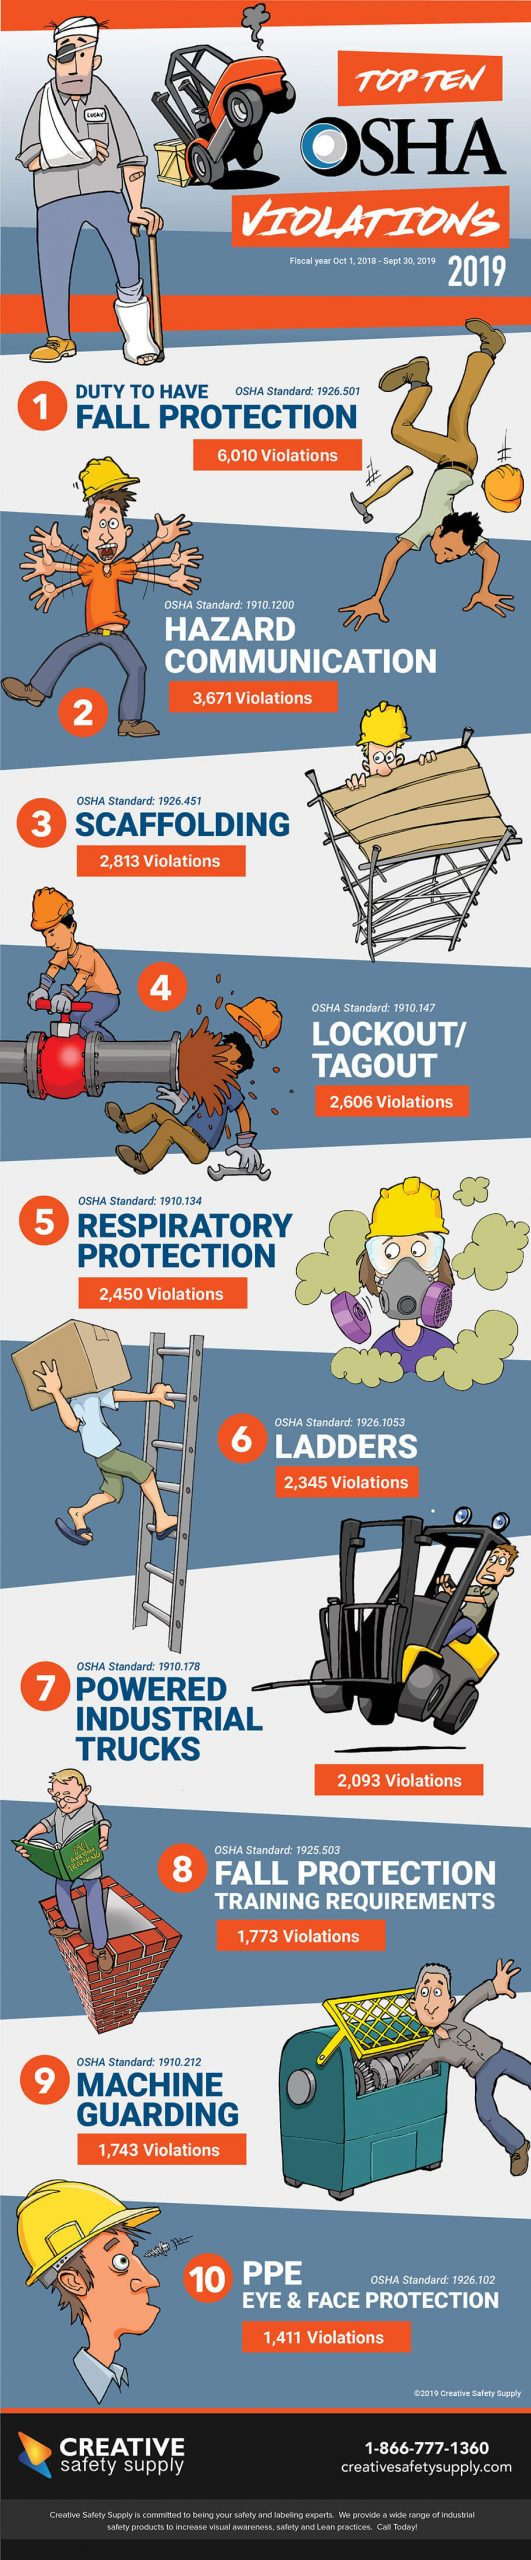 Infographic of OSHA's most frequently cited standards from 2019.